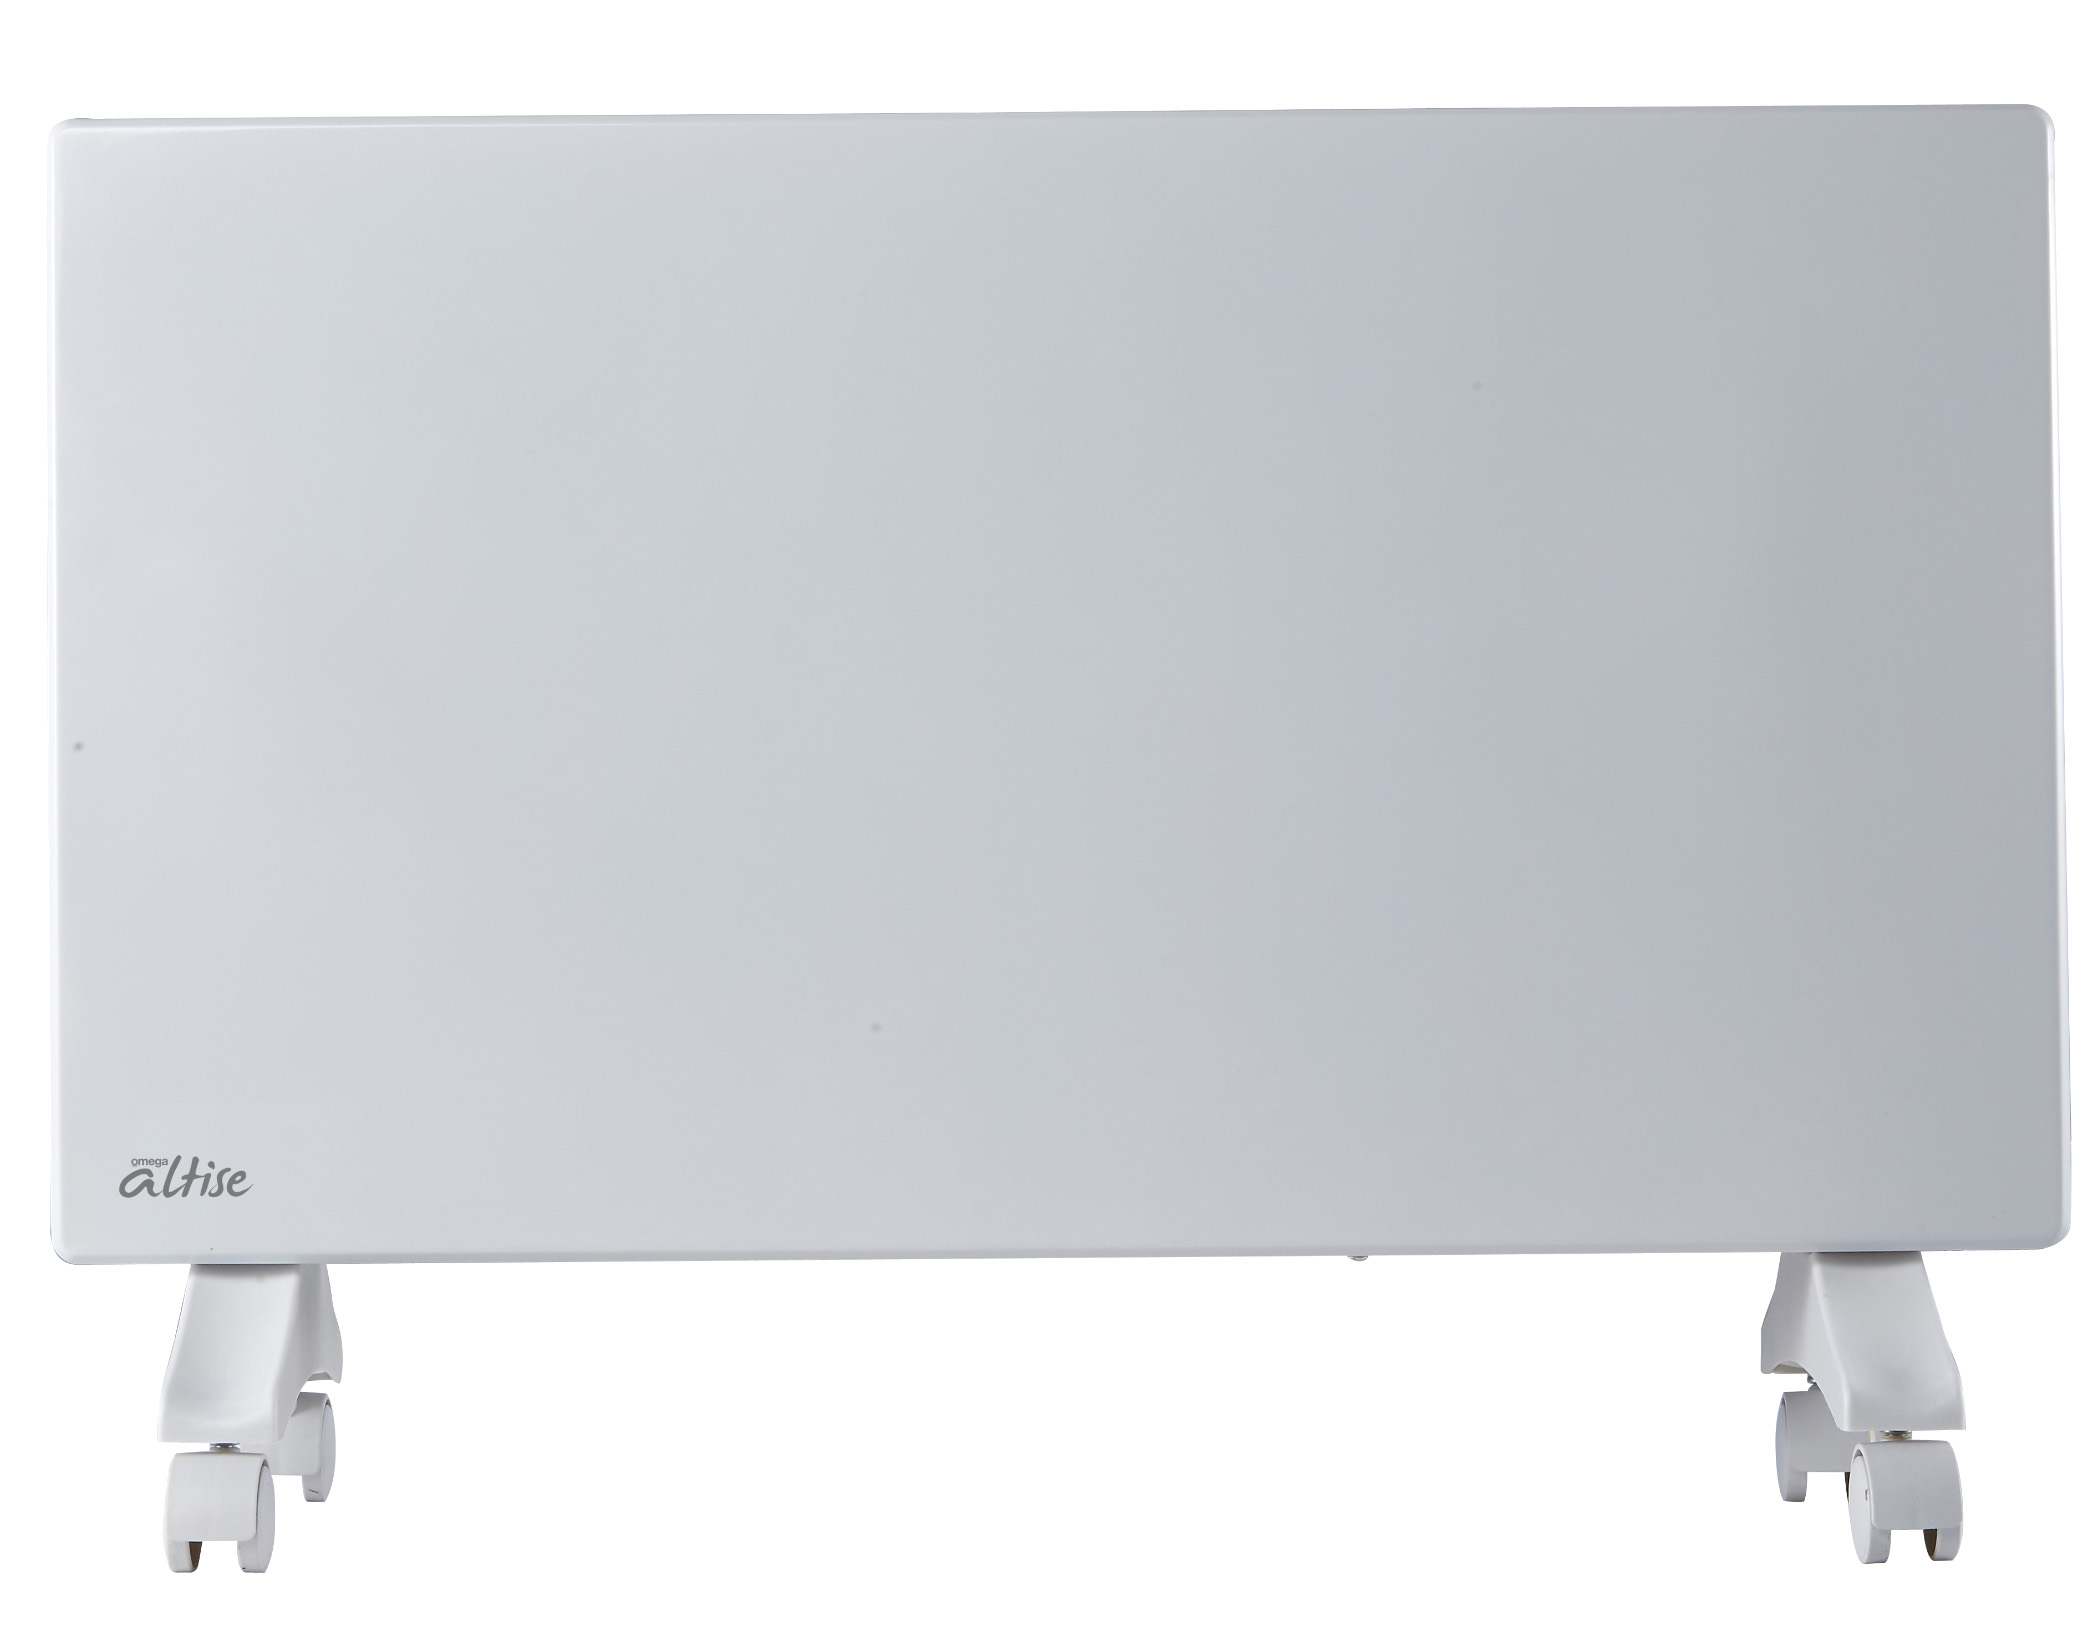 Omega Altise OAPE2000W Panel Convection Heater with LED Display